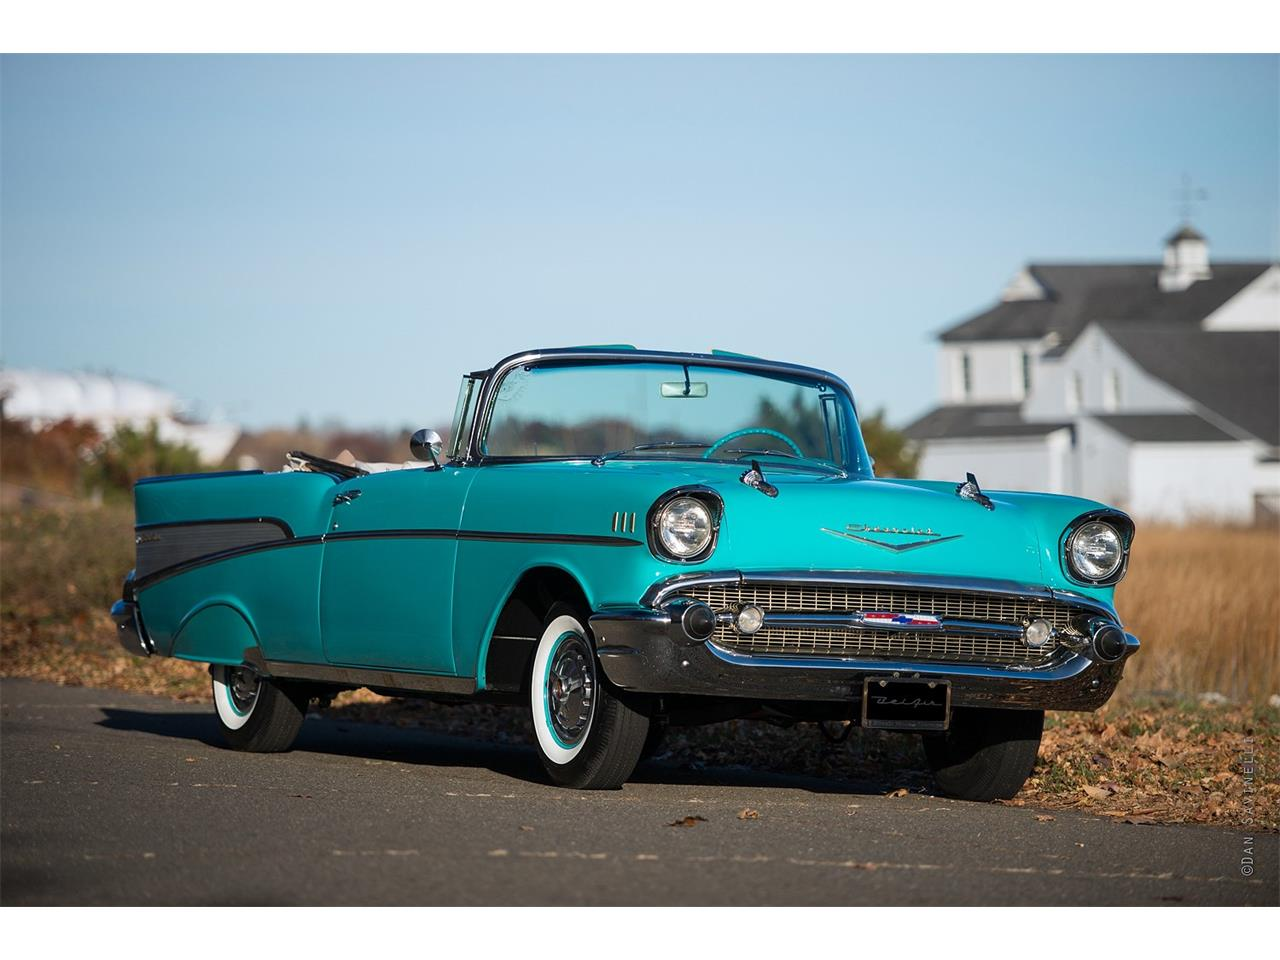 Large Picture of Classic '57 Chevrolet Bel Air located in Connecticut Offered by Black Horse Garage - KDHZ